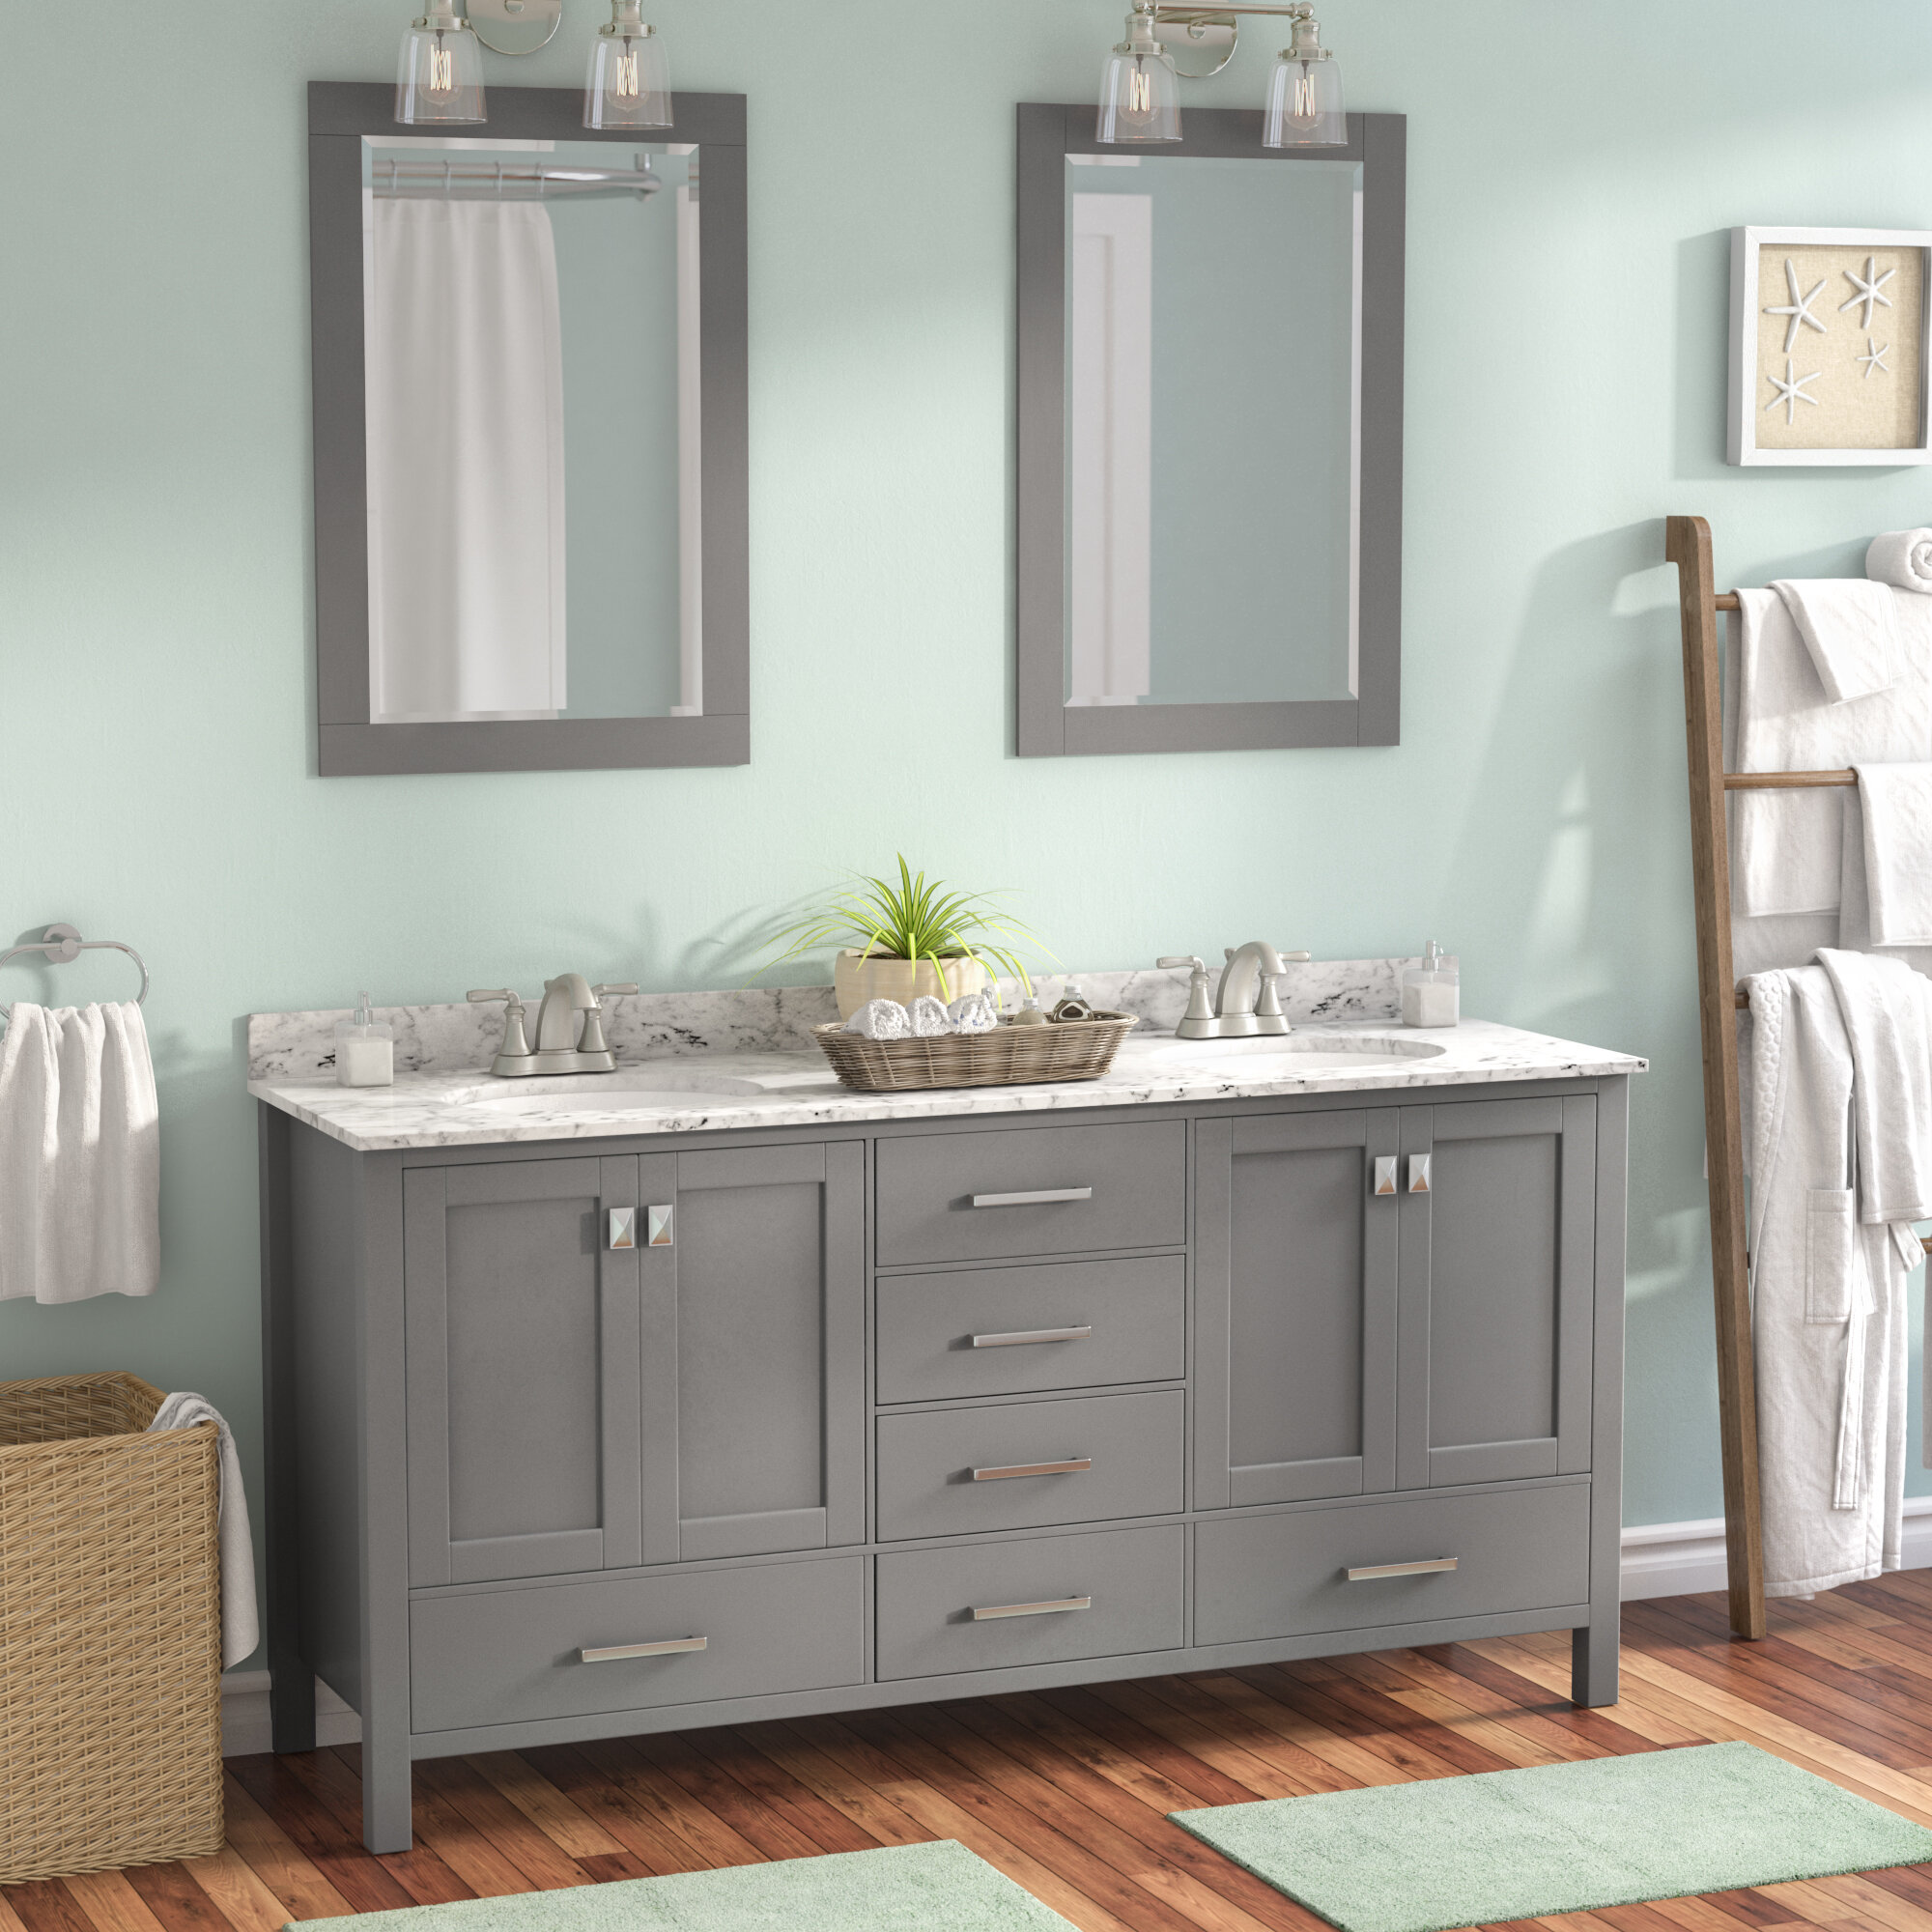 bathroom photos perfect com for htsrec vanity top double lovely on sink